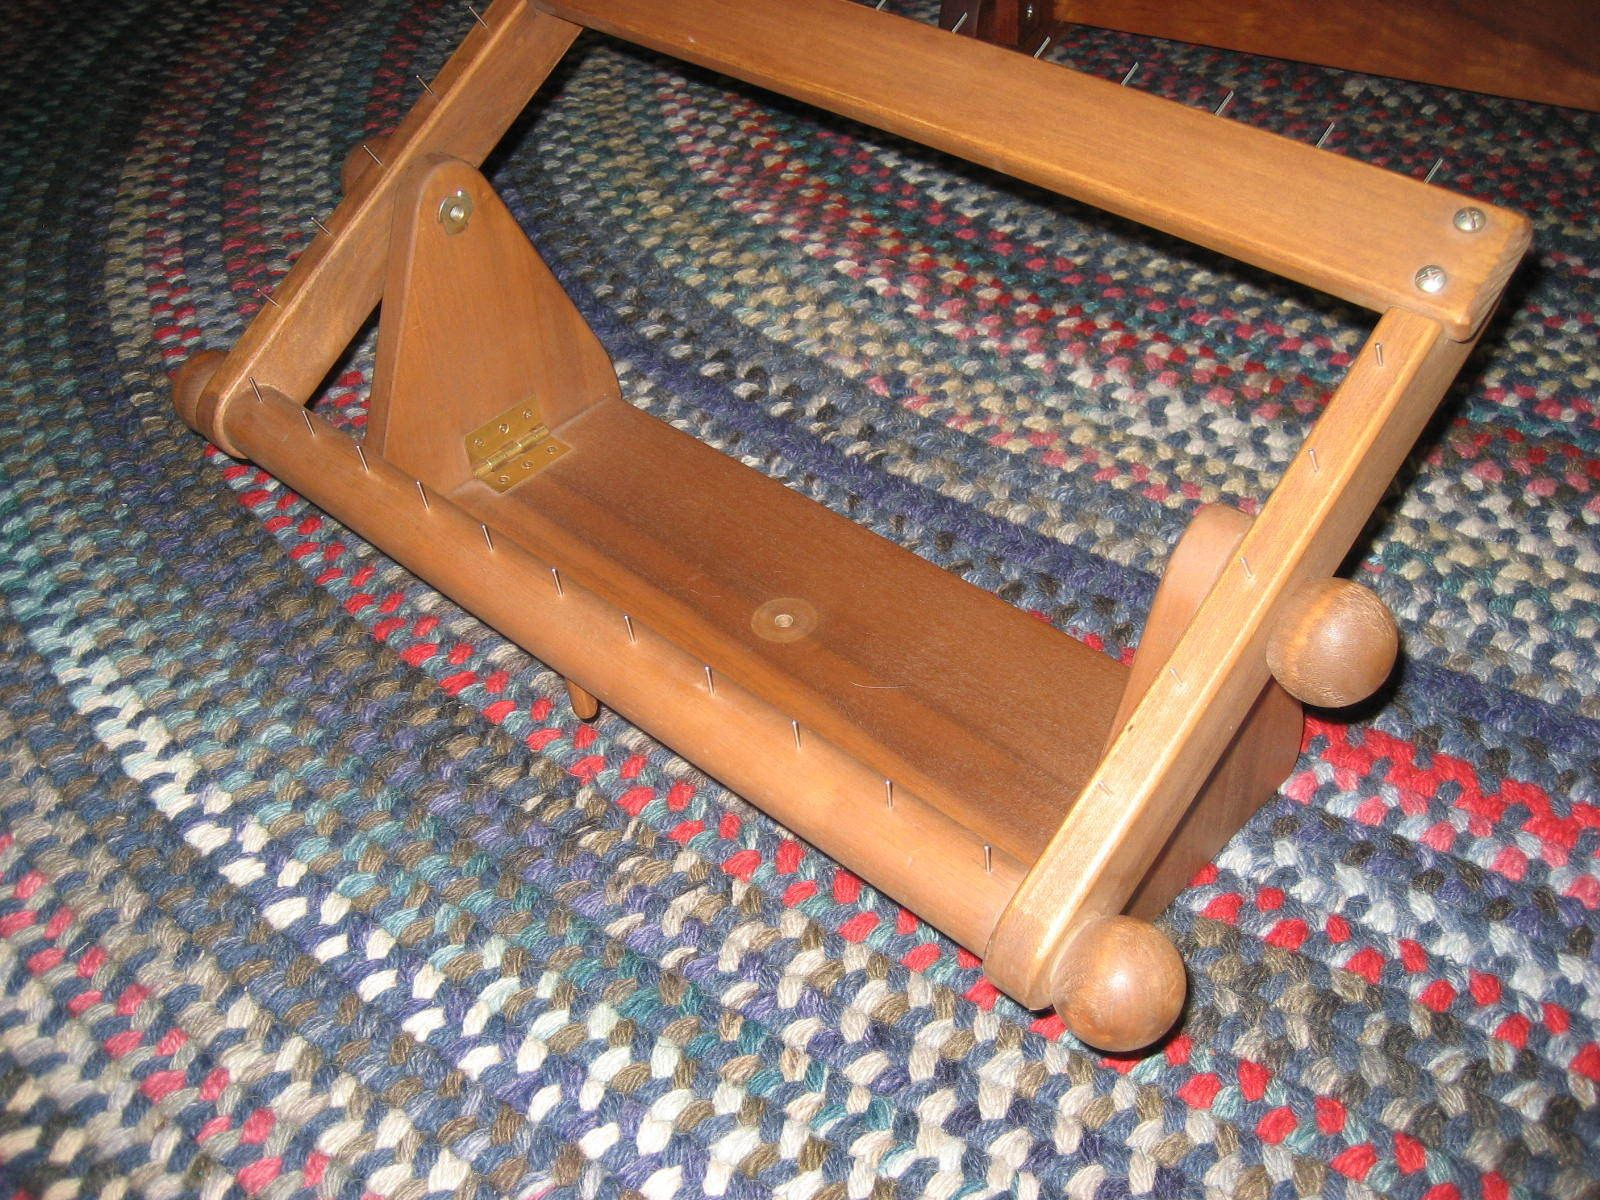 Anderson Floor And Lap Frame Combo Rug Hooking Frame Nice Size Portable Rug Hooking Frames Rug Hooking Rugs